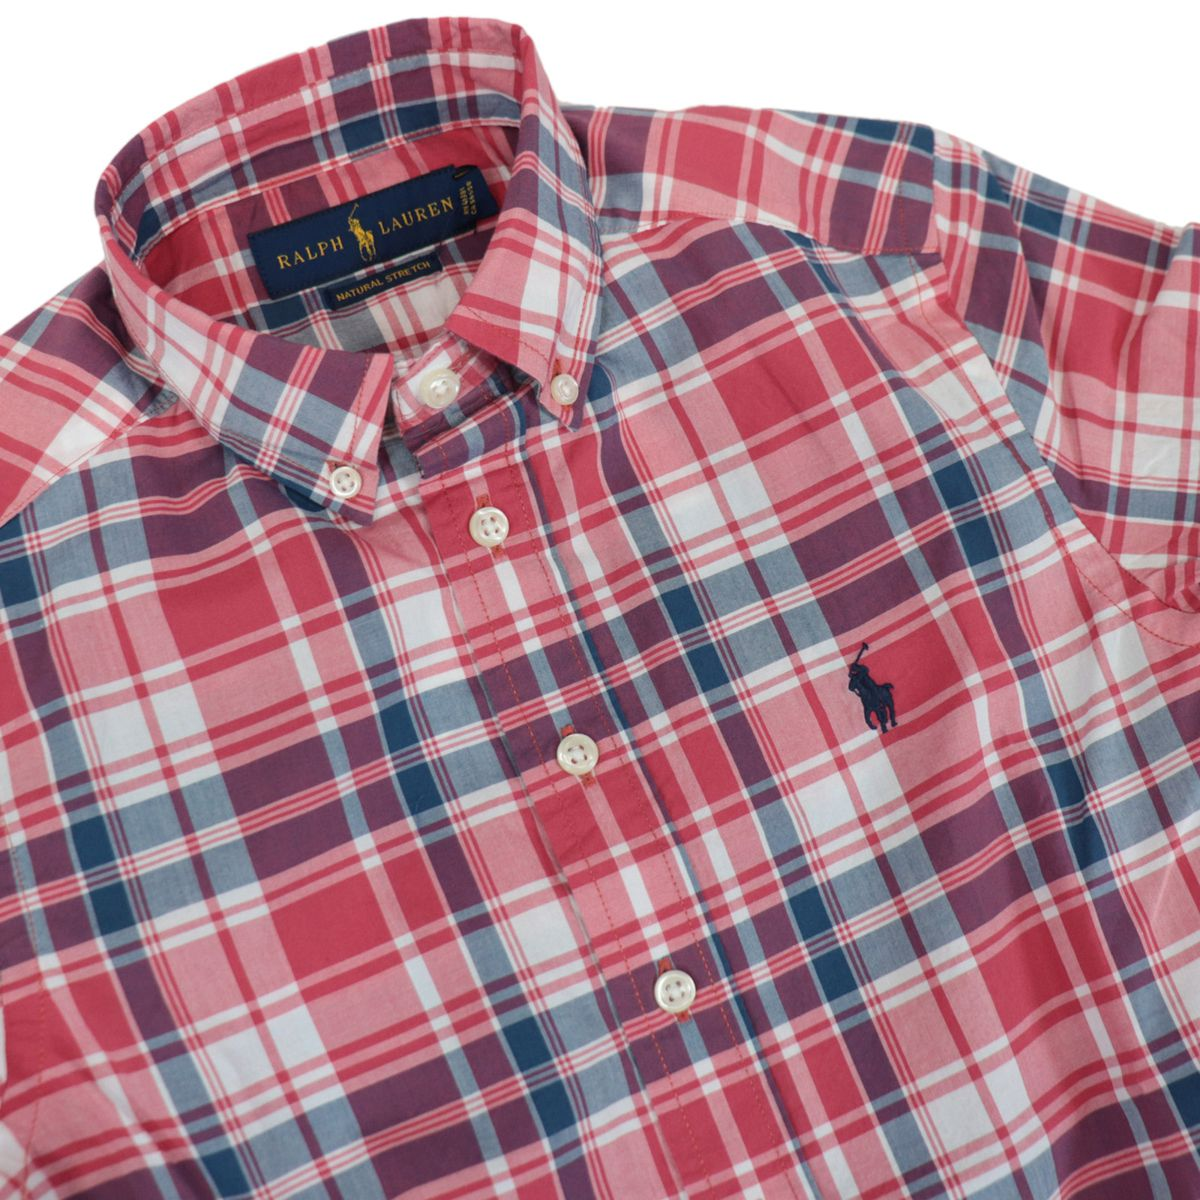 Botton down shirt in cotton with madras pattern White red Polo Ralph Lauren